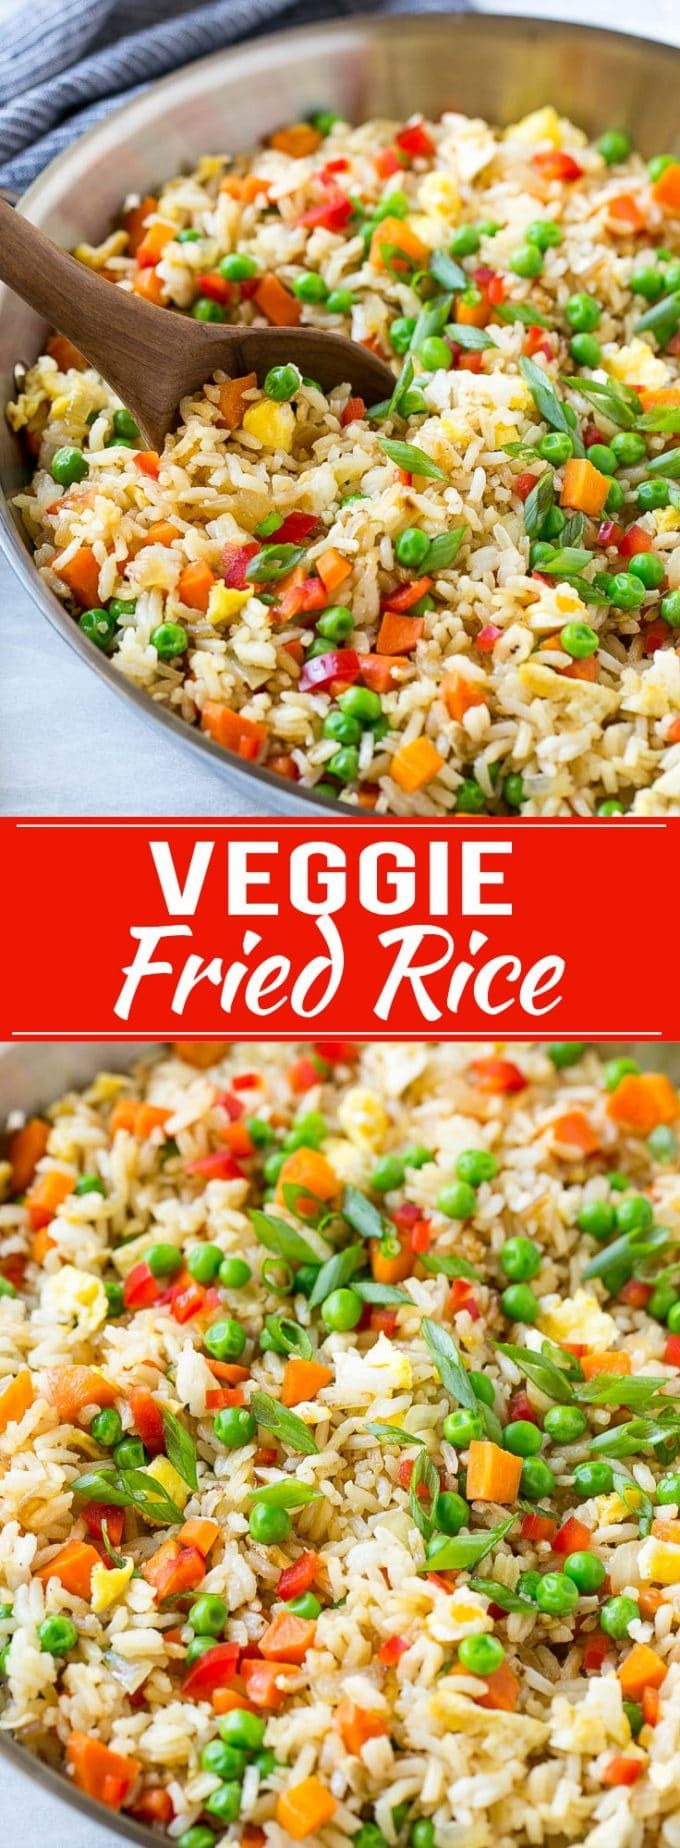 Veggie Fried Rice Recipe   Vegetarian Fried Rice   Easy Fried Rice Recipe   Chinese Food   Take Out